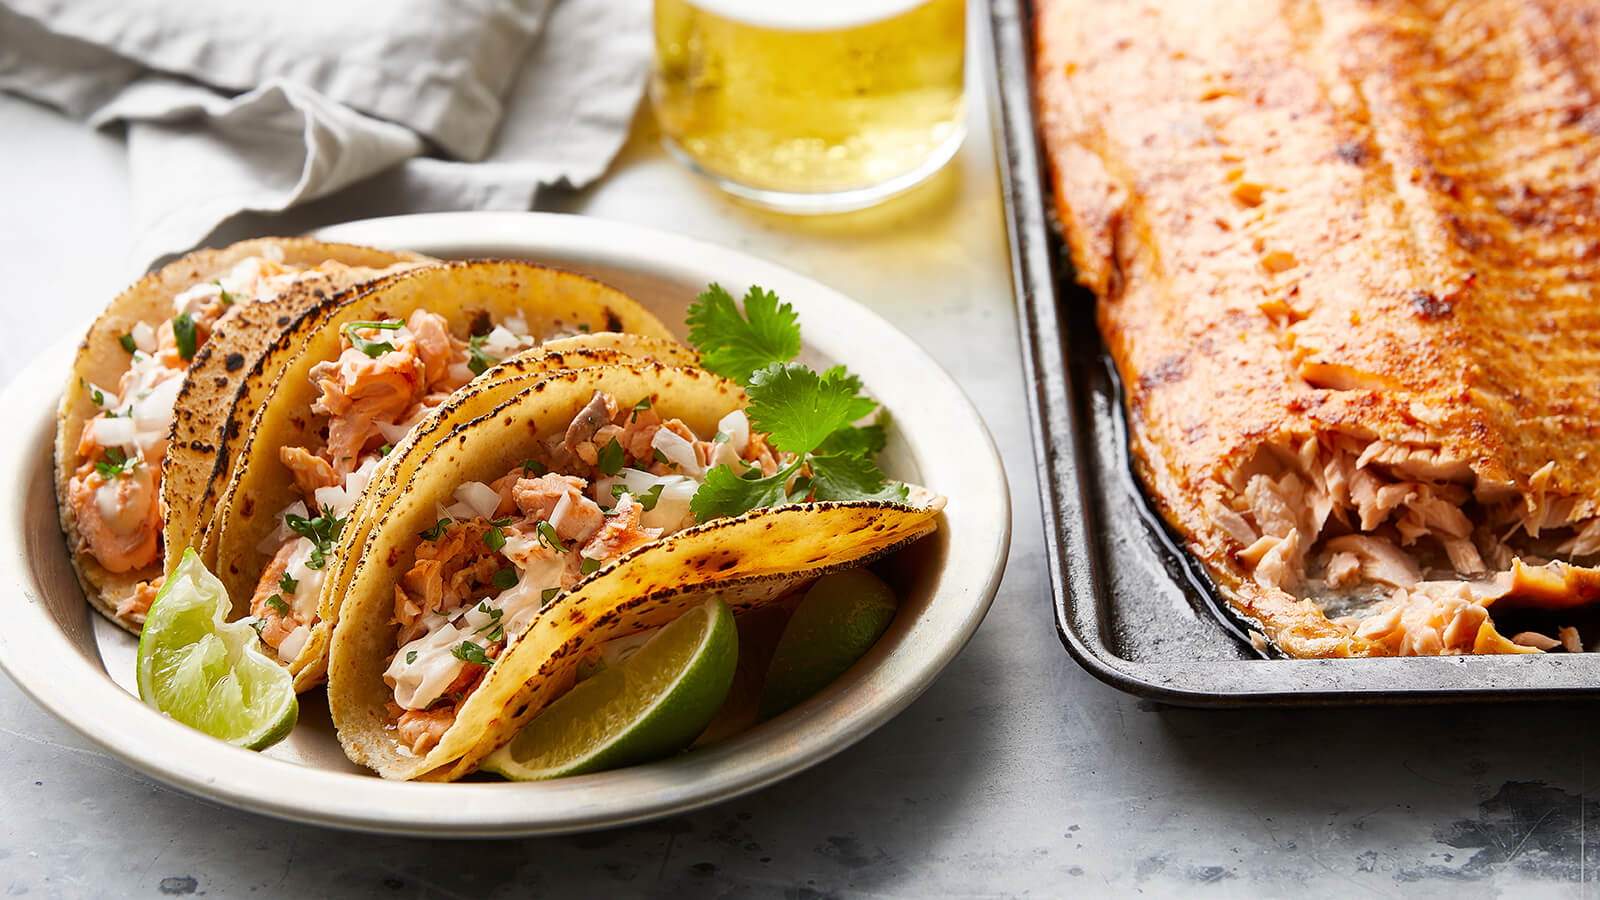 Blackened Salmon Tacos with Chipotle Crema